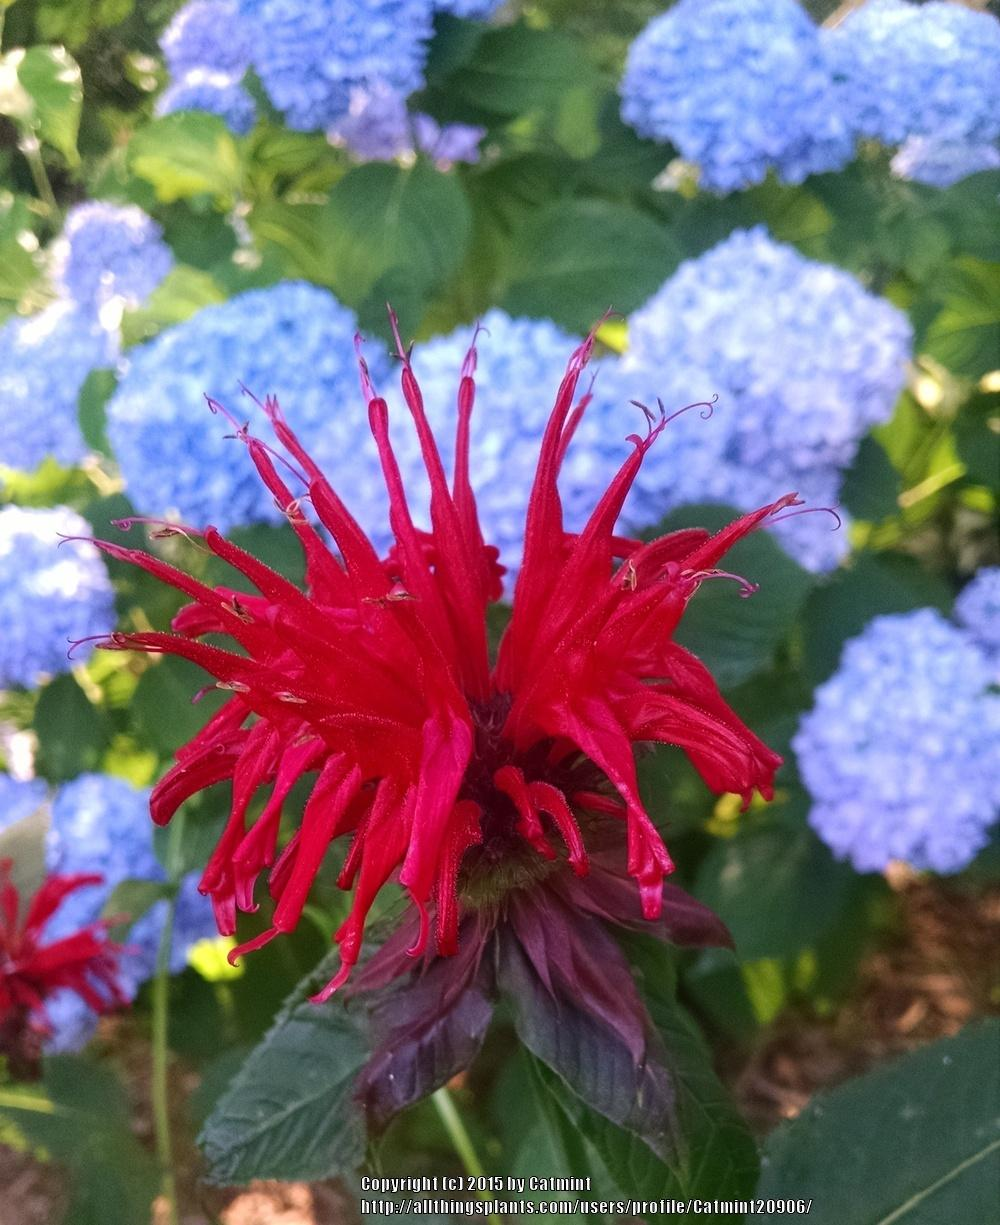 Photo of Bee Balm (Monarda didyma 'Jacob Cline') uploaded by Catmint20906